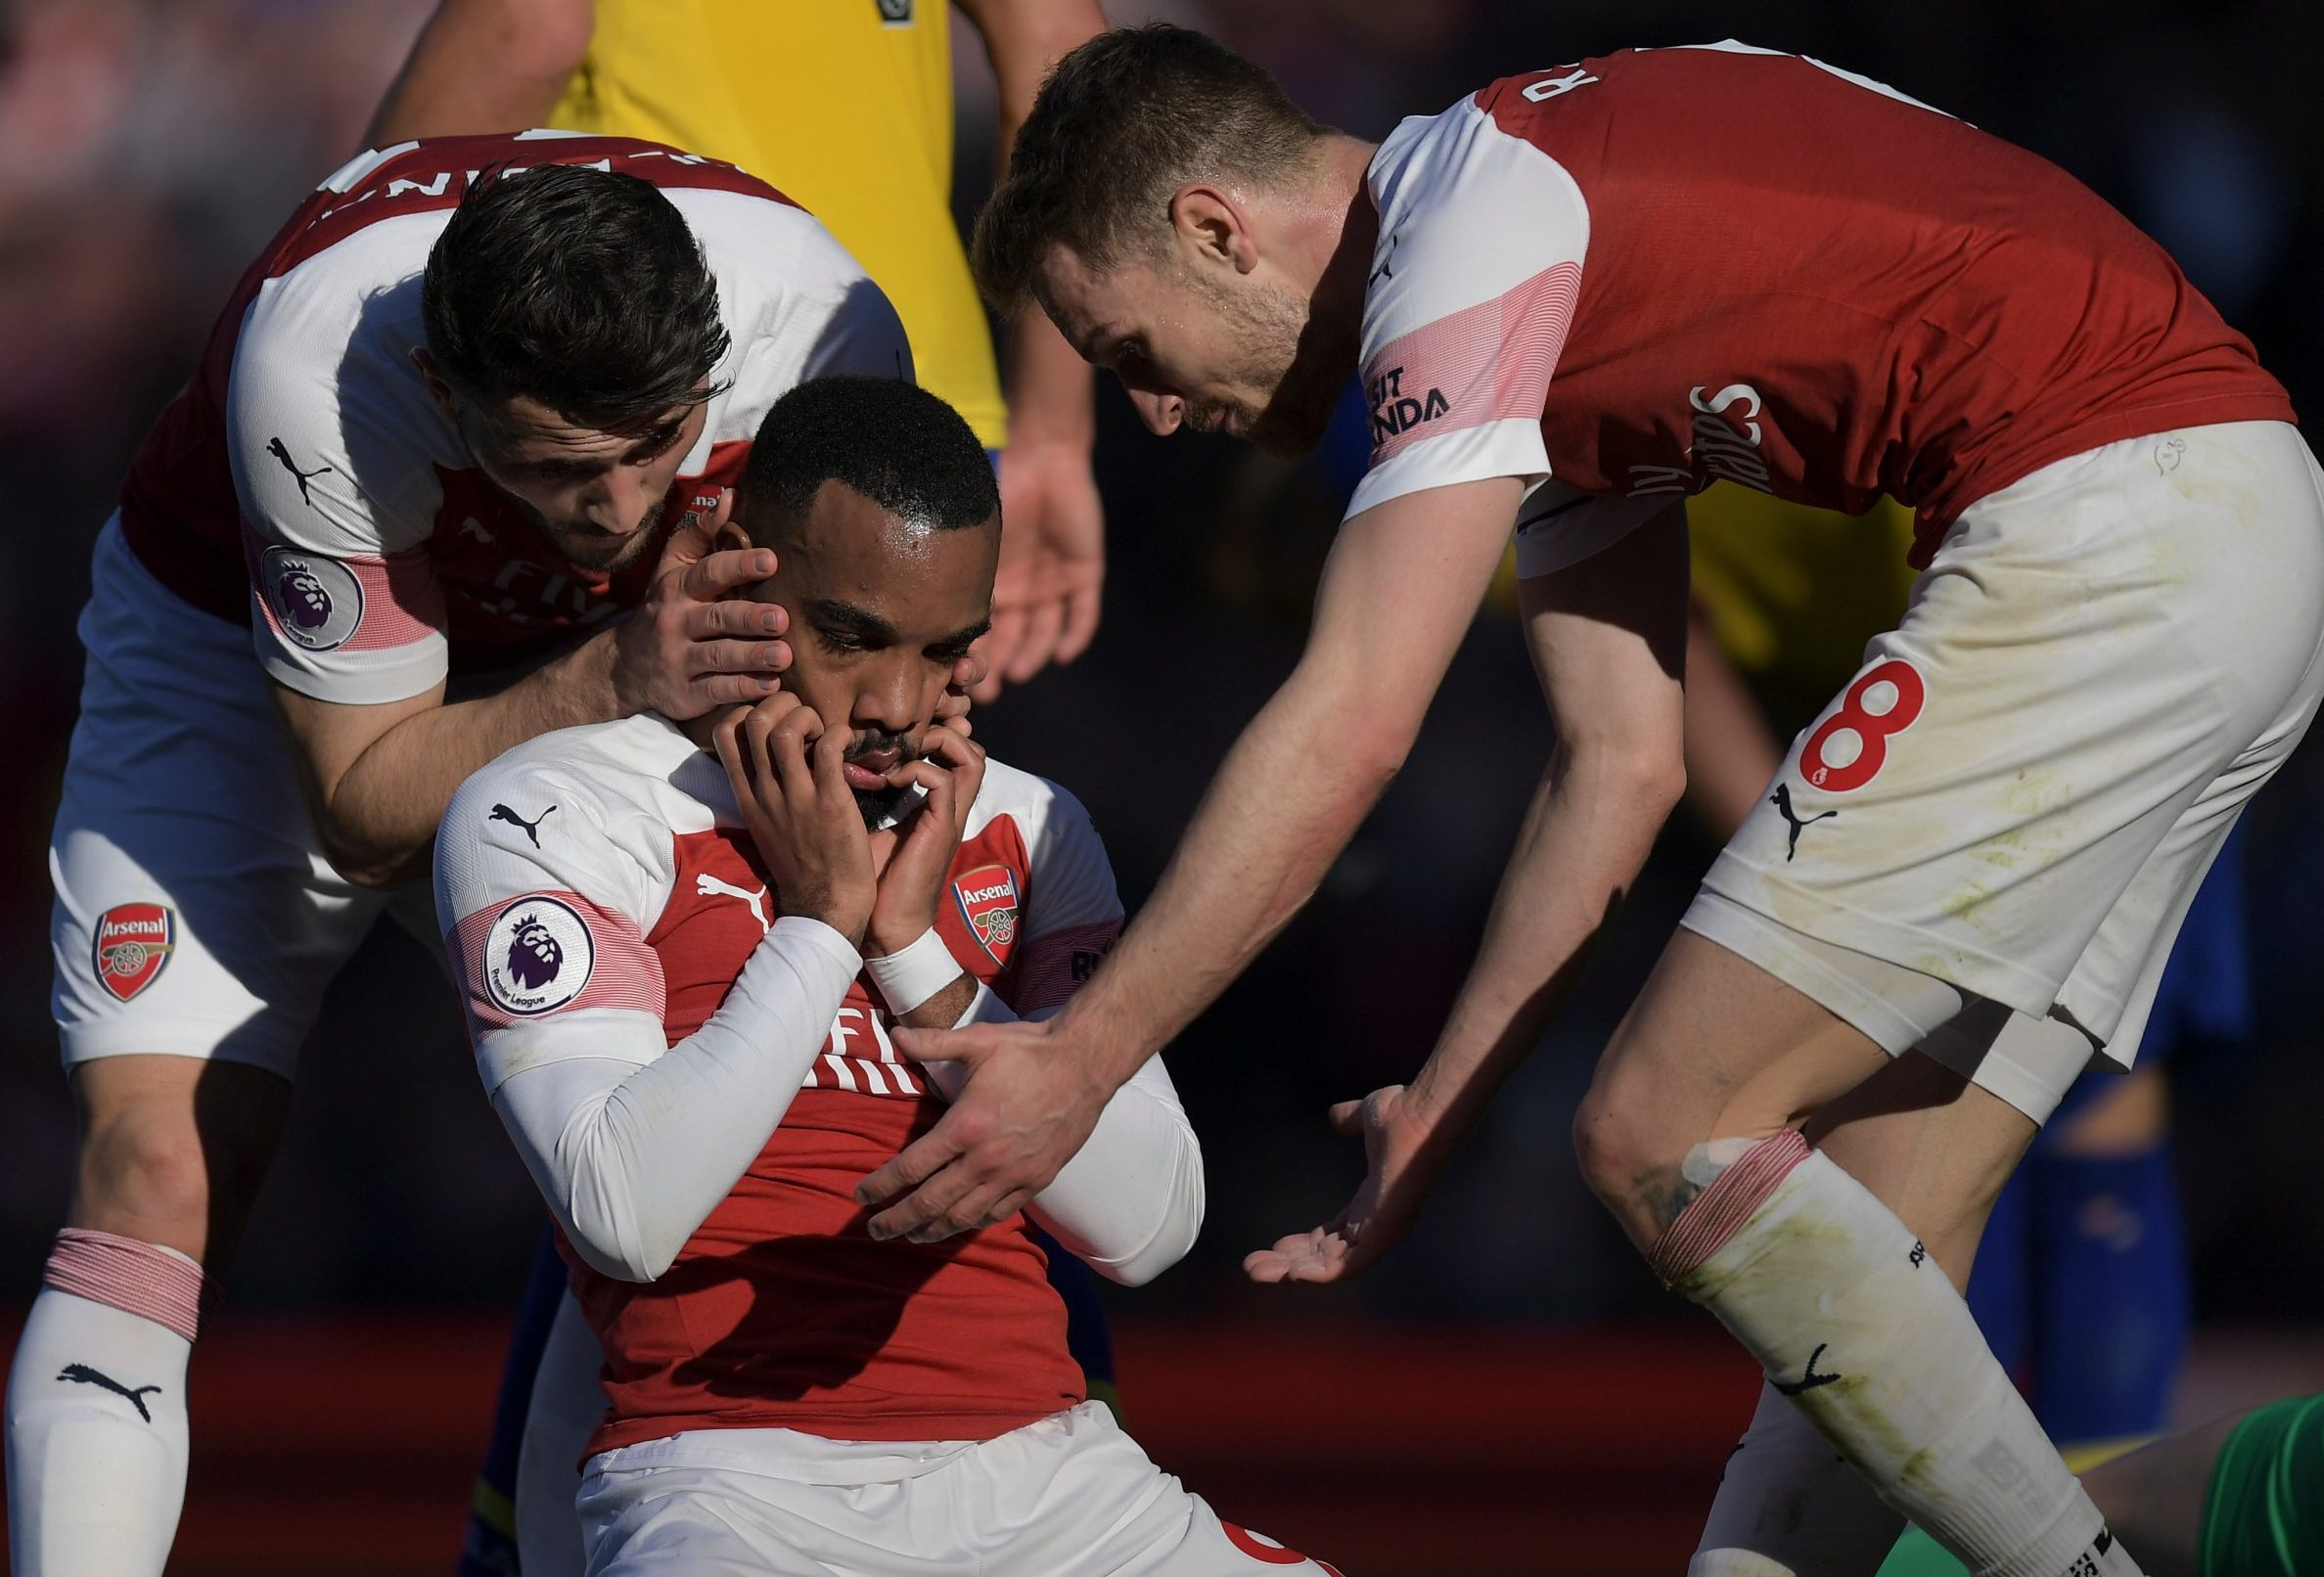 Alexandre Lacazette was gutted during Arsenal's win over Southampton, reveals Laurent Koscielny